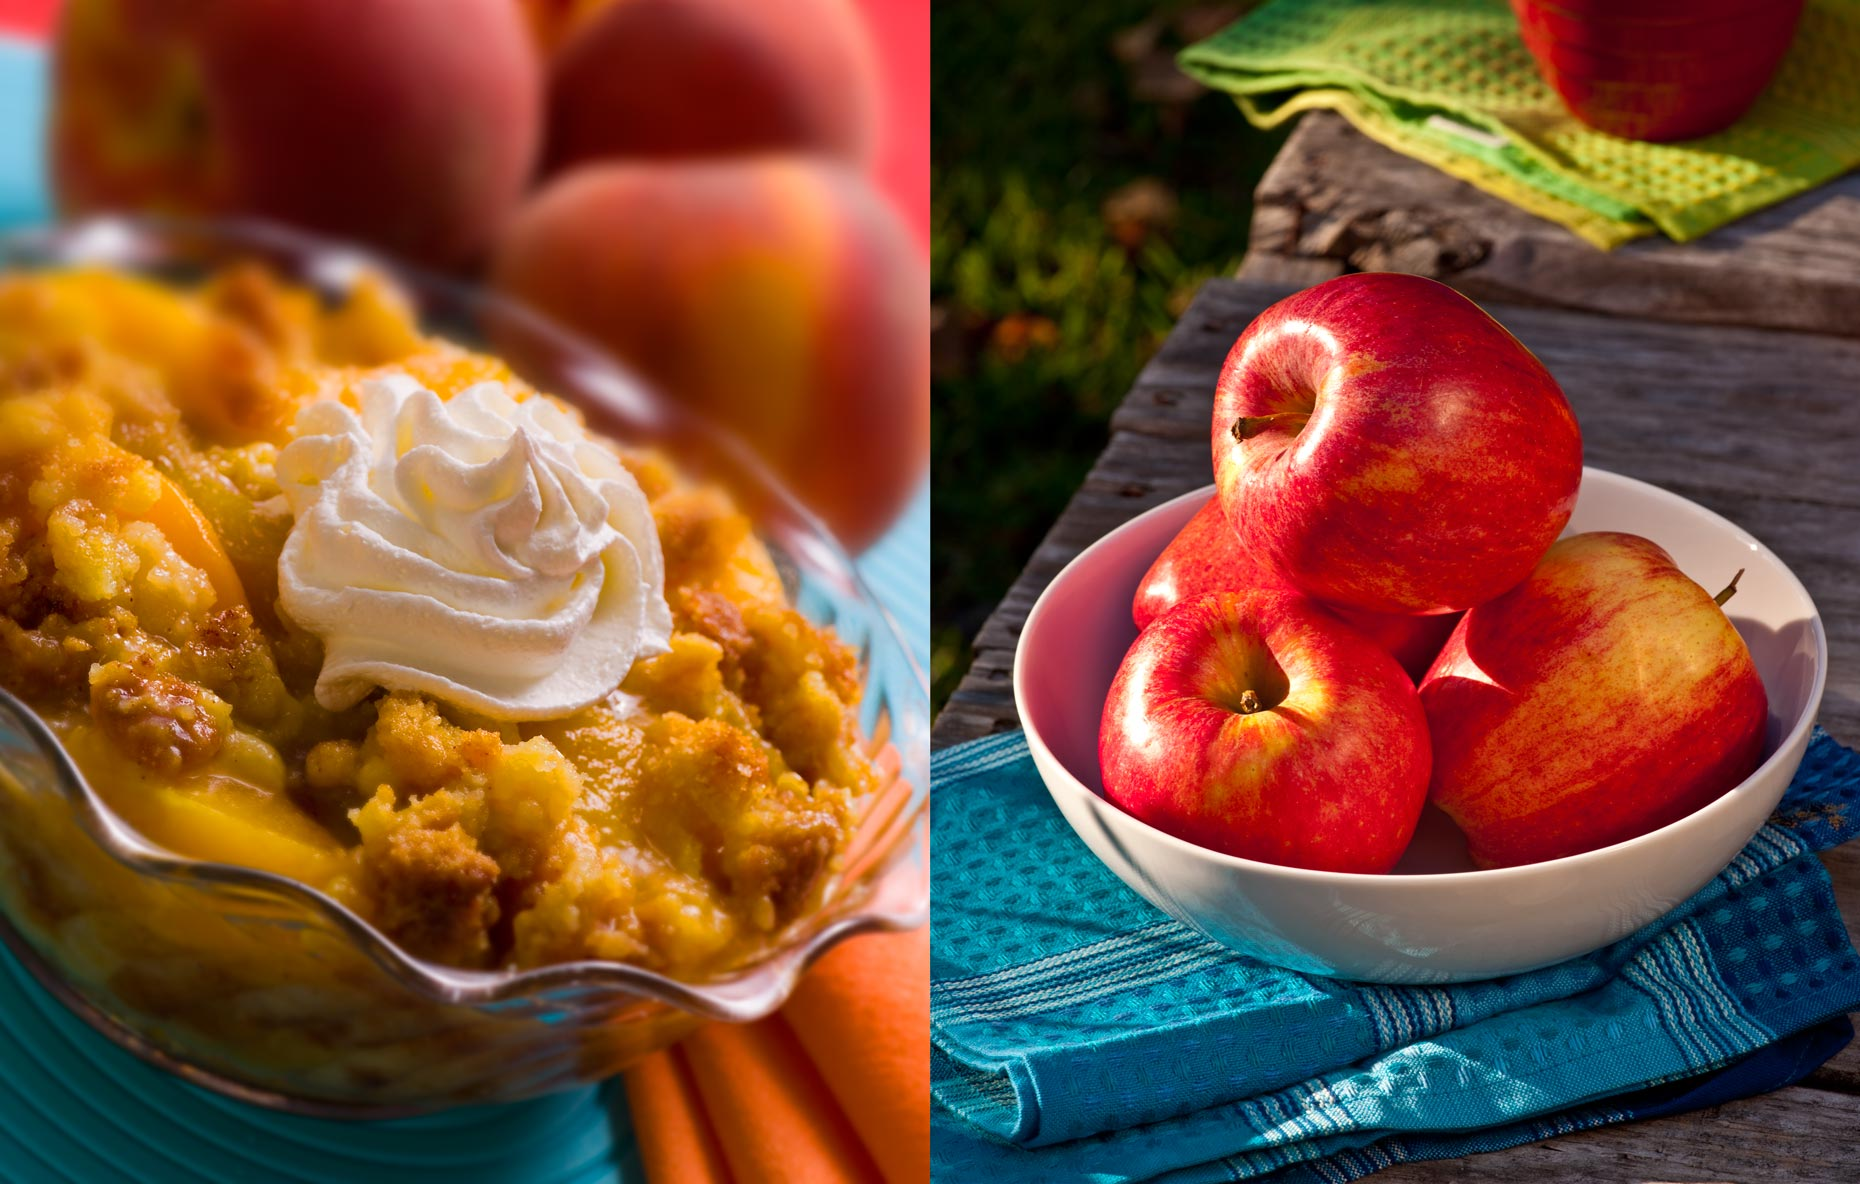 Dessert Photogrpahy | Peach Cobbler & Red Apples